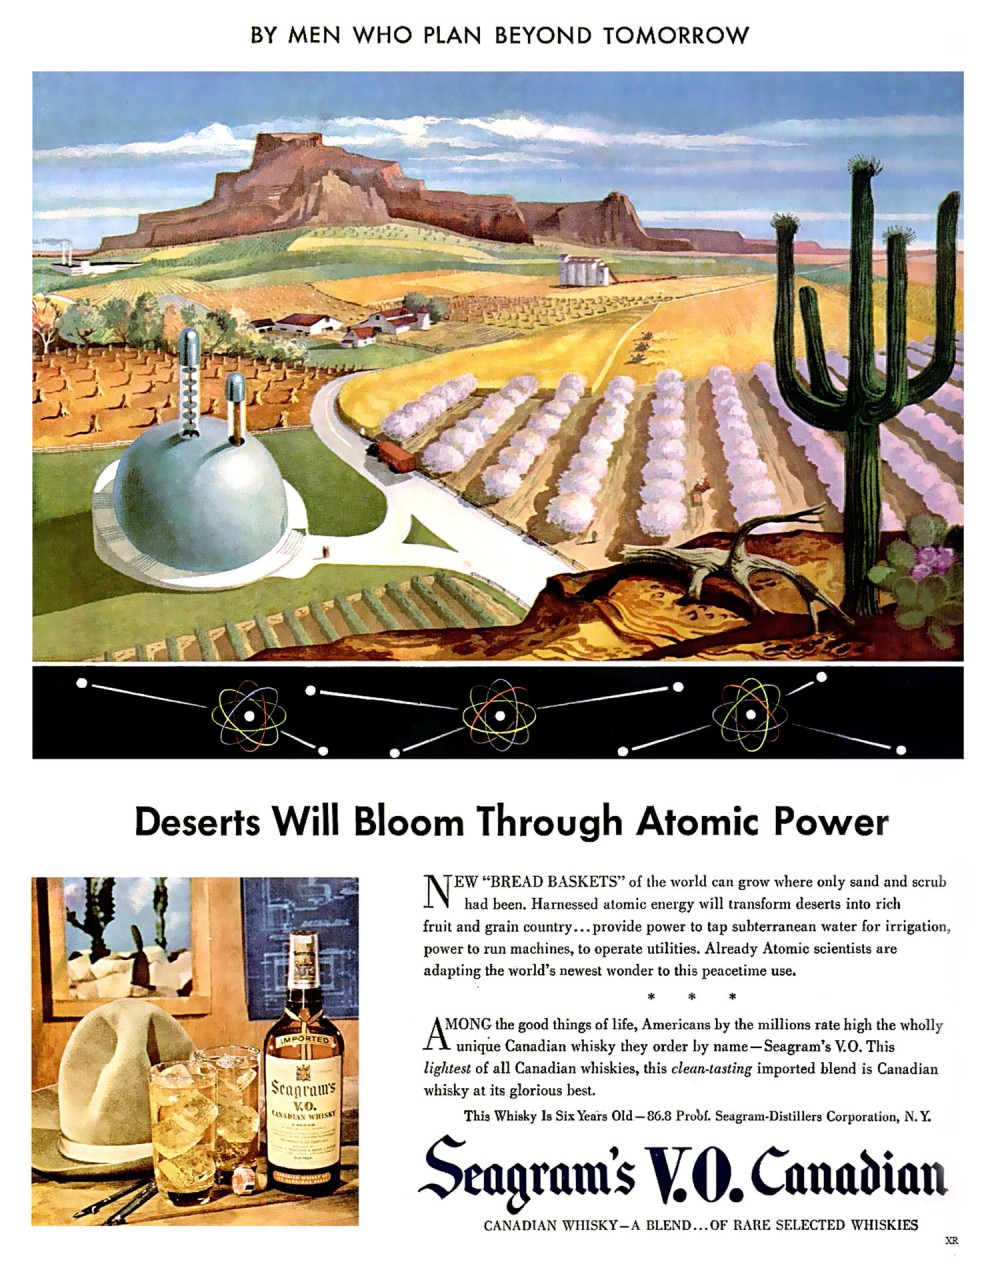 1947 - MWPBT Deserts Will Bloom Through Atomic Power